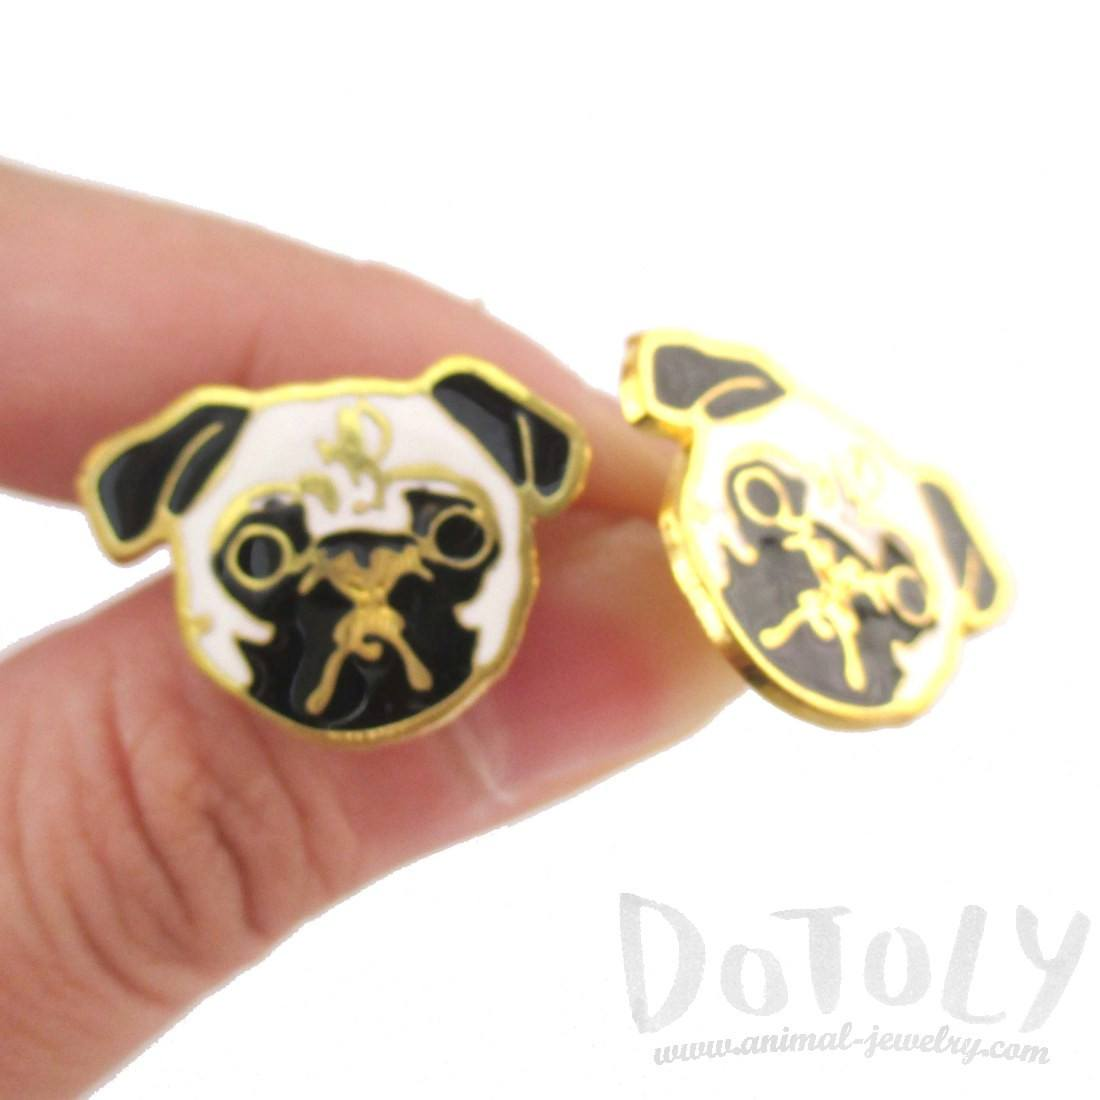 Adorable Pug Puppy Dog Face Shaped Stud Earrings | Limited Edition